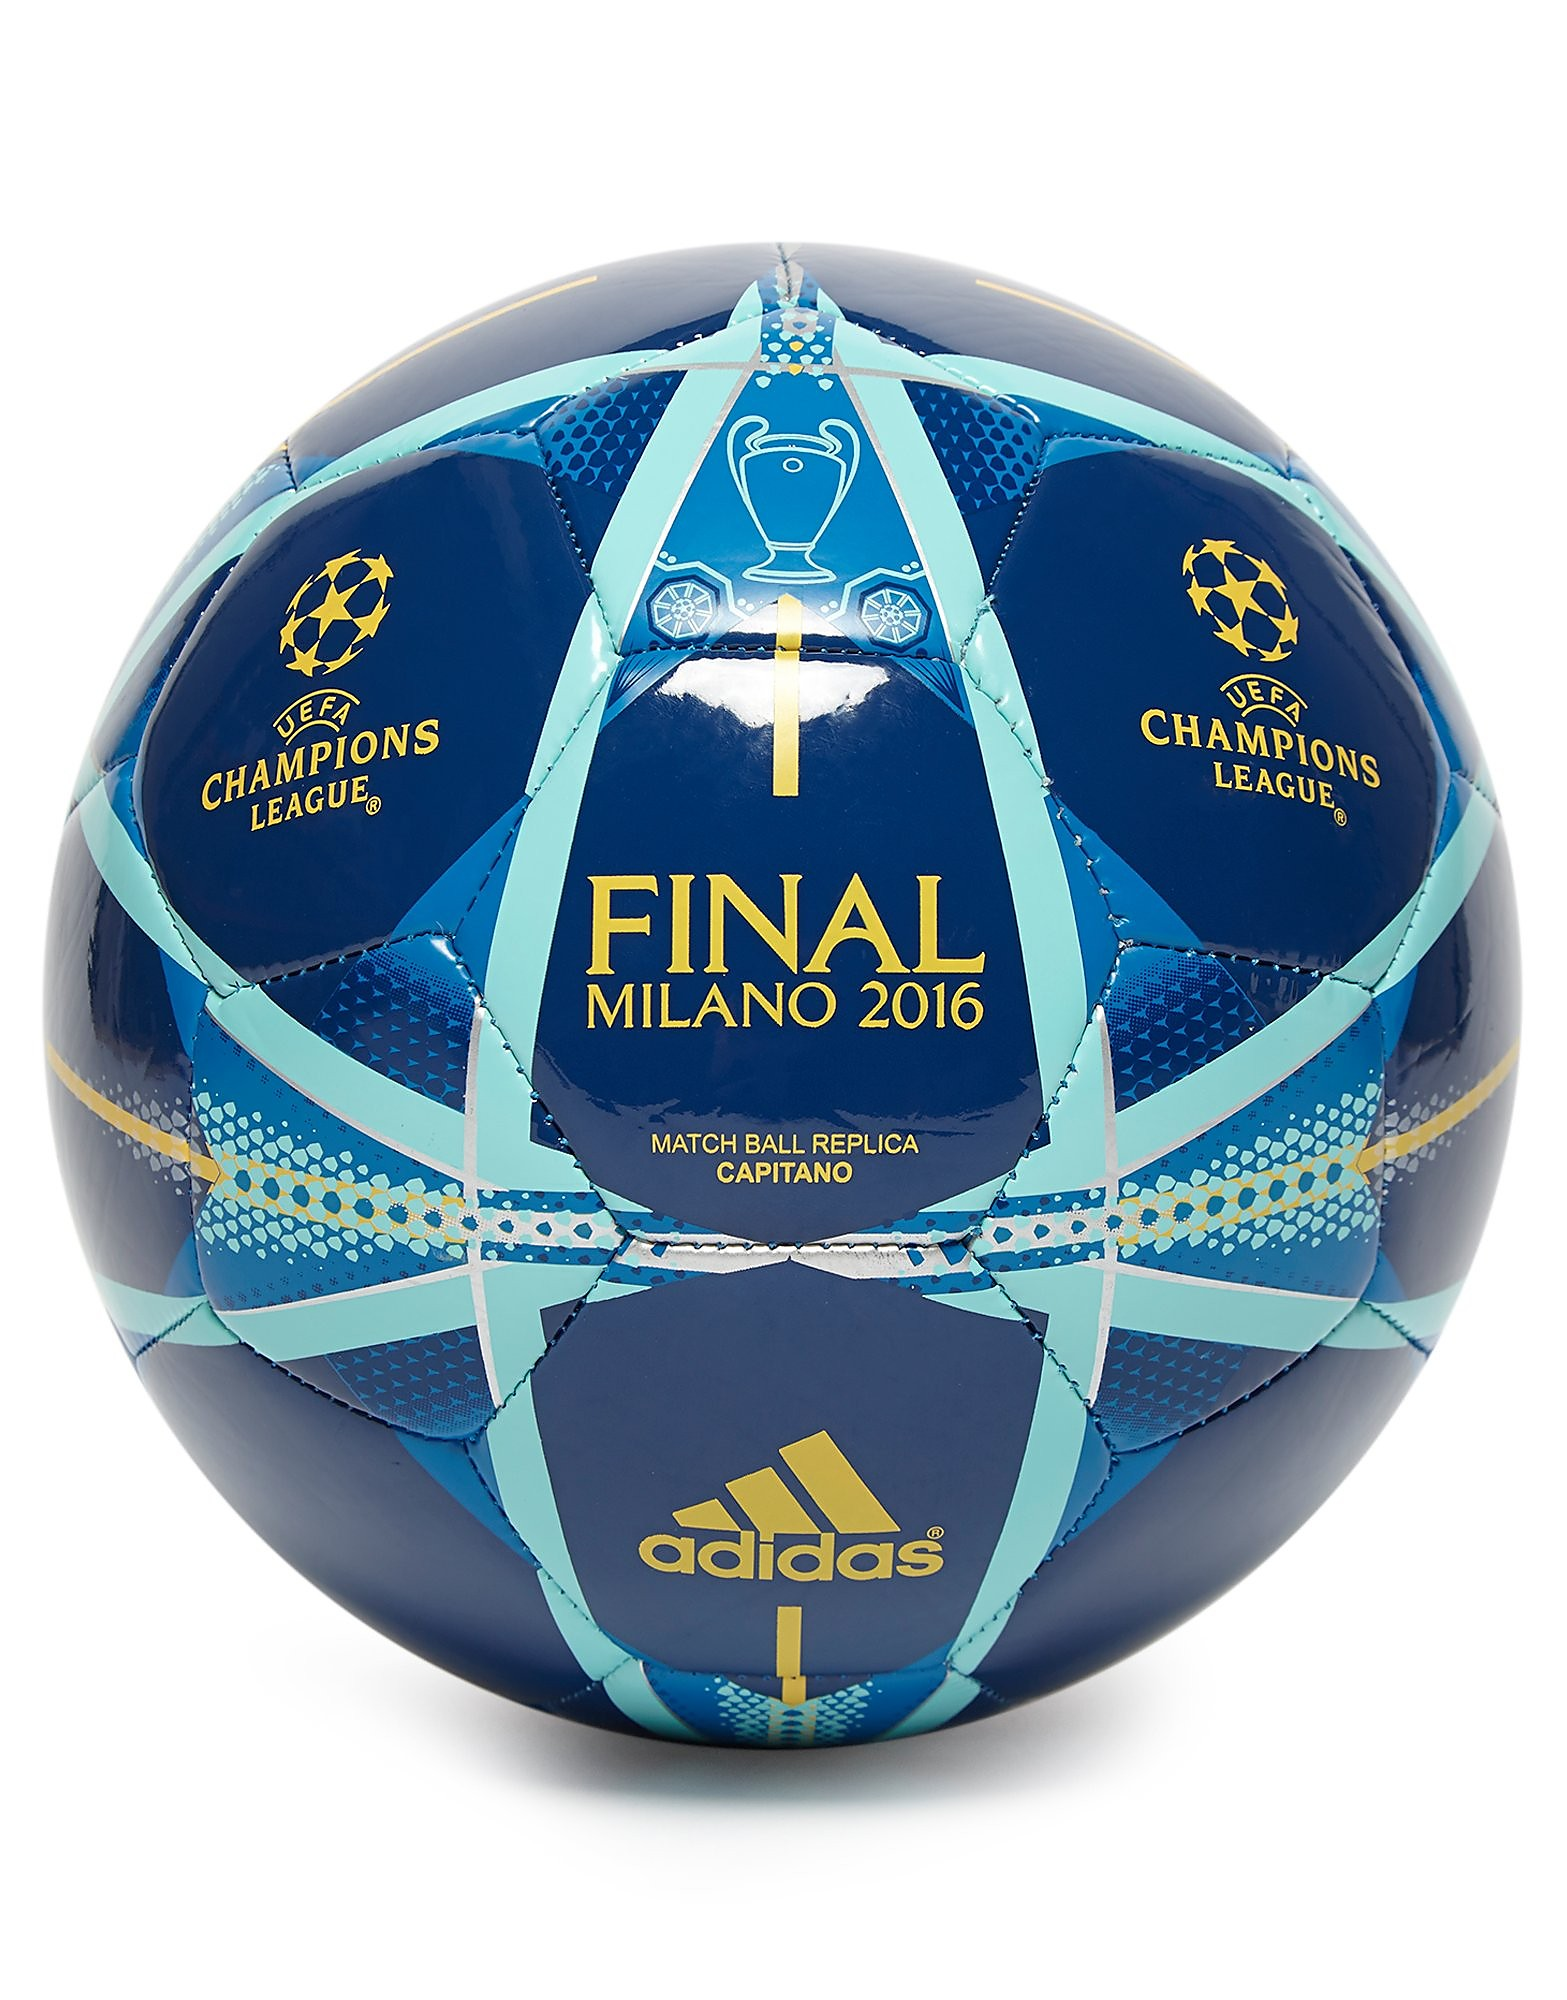 adidas Finale Milano 2016 Champions League-voetbal